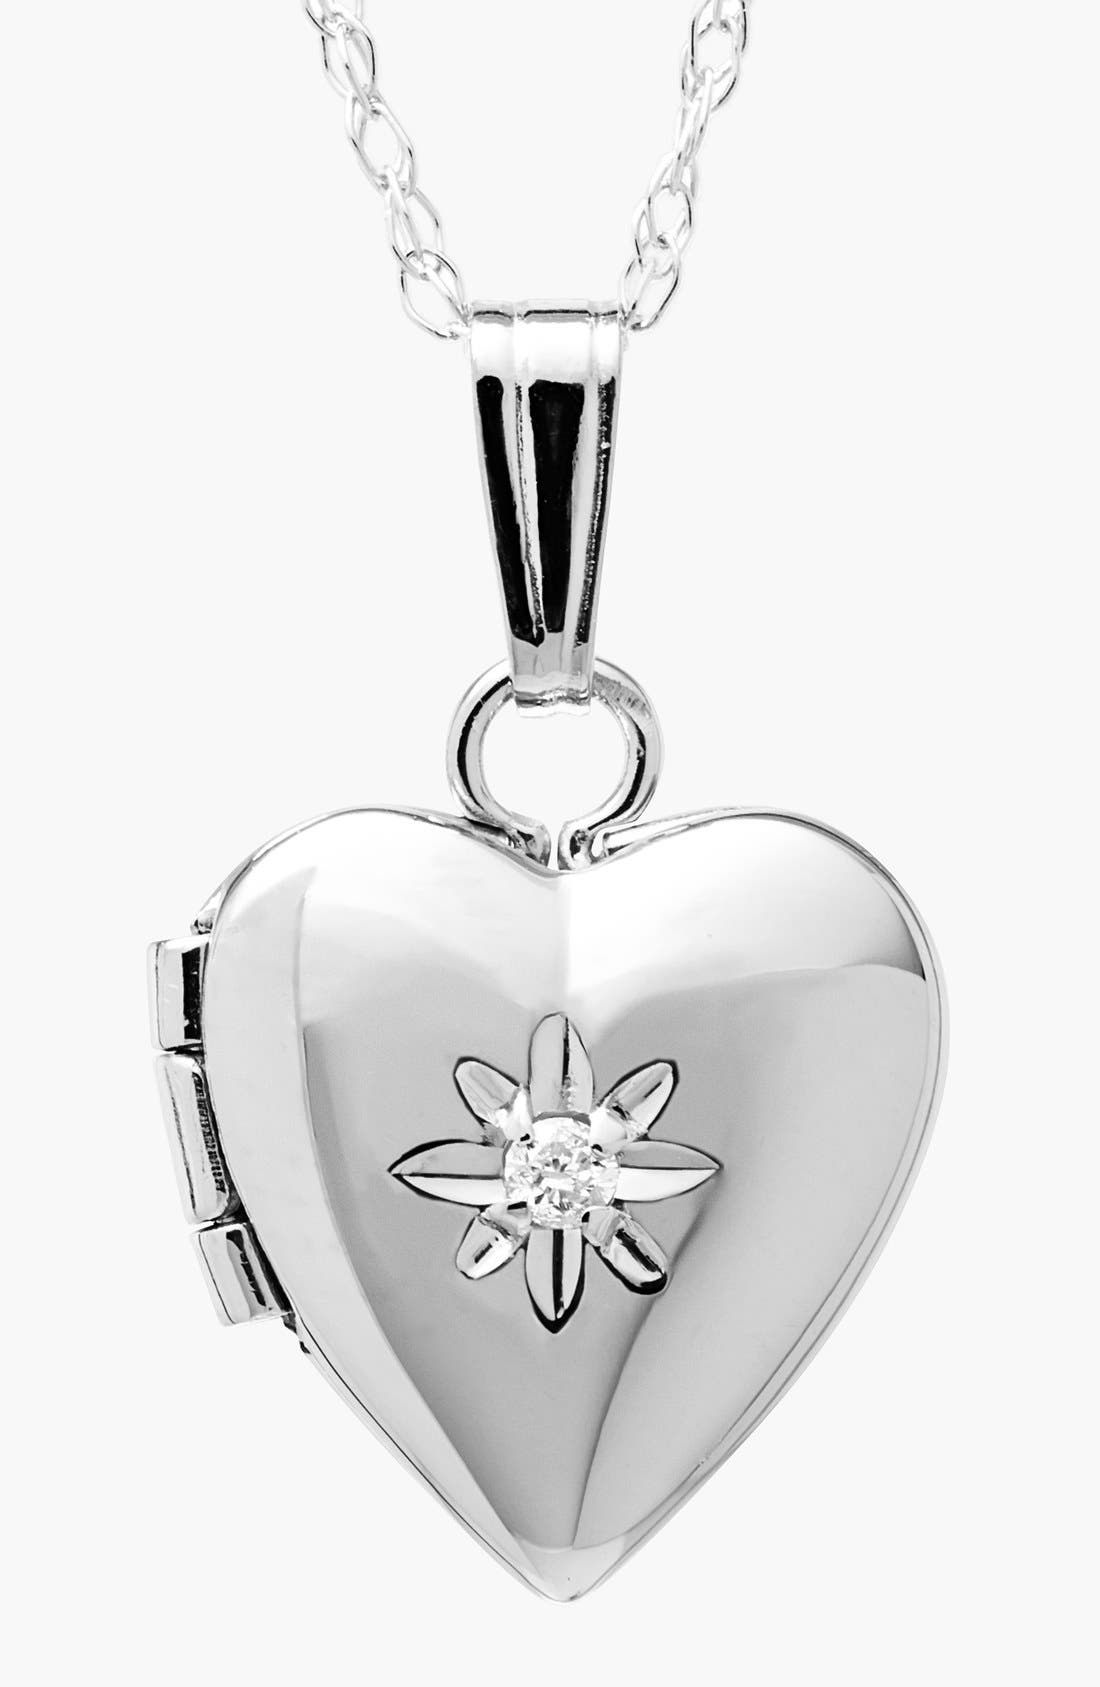 14k White Gold Heart Locket Necklace,                         Main,                         color, White Gold